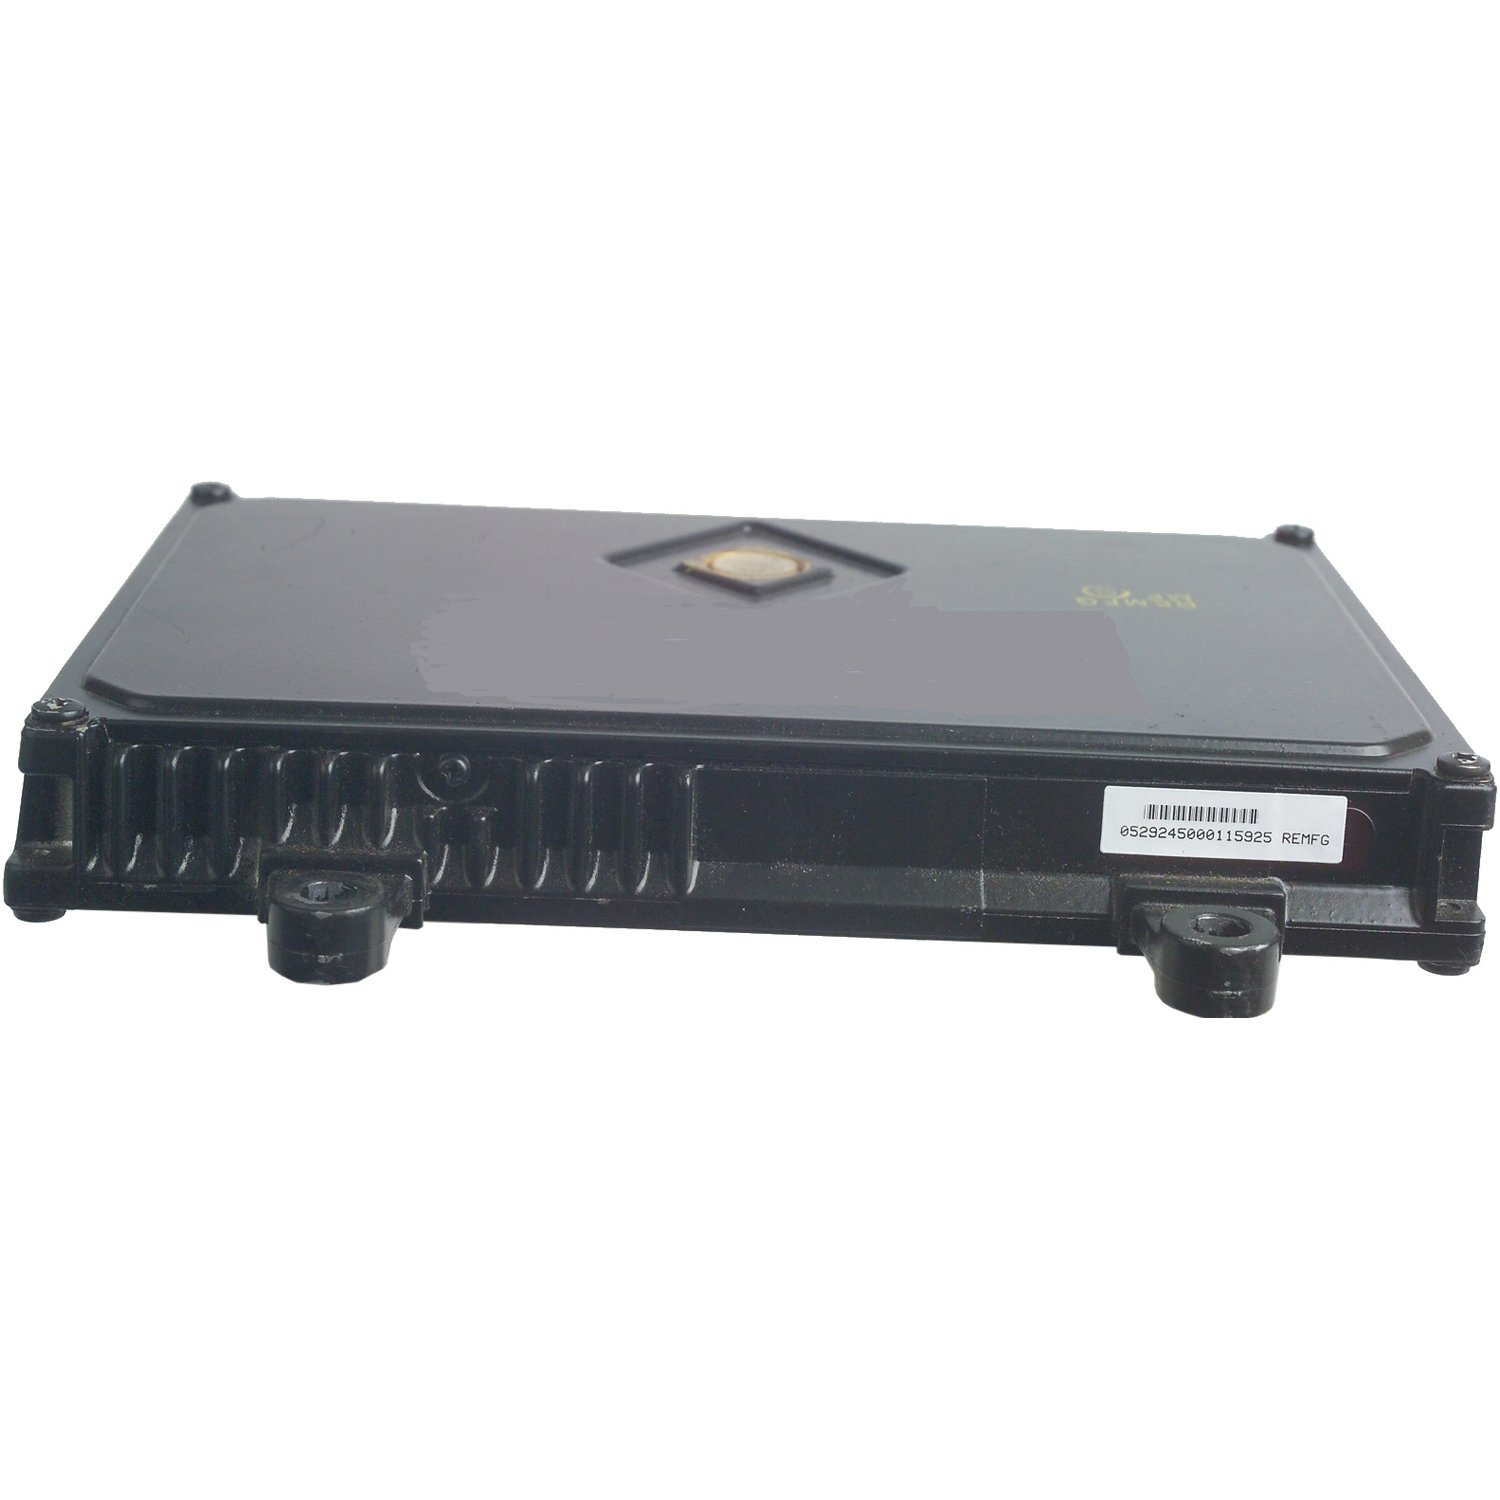 Cardone 72-2025 Remanufactured Import Computer A1 Cardone 72-2025-AA1